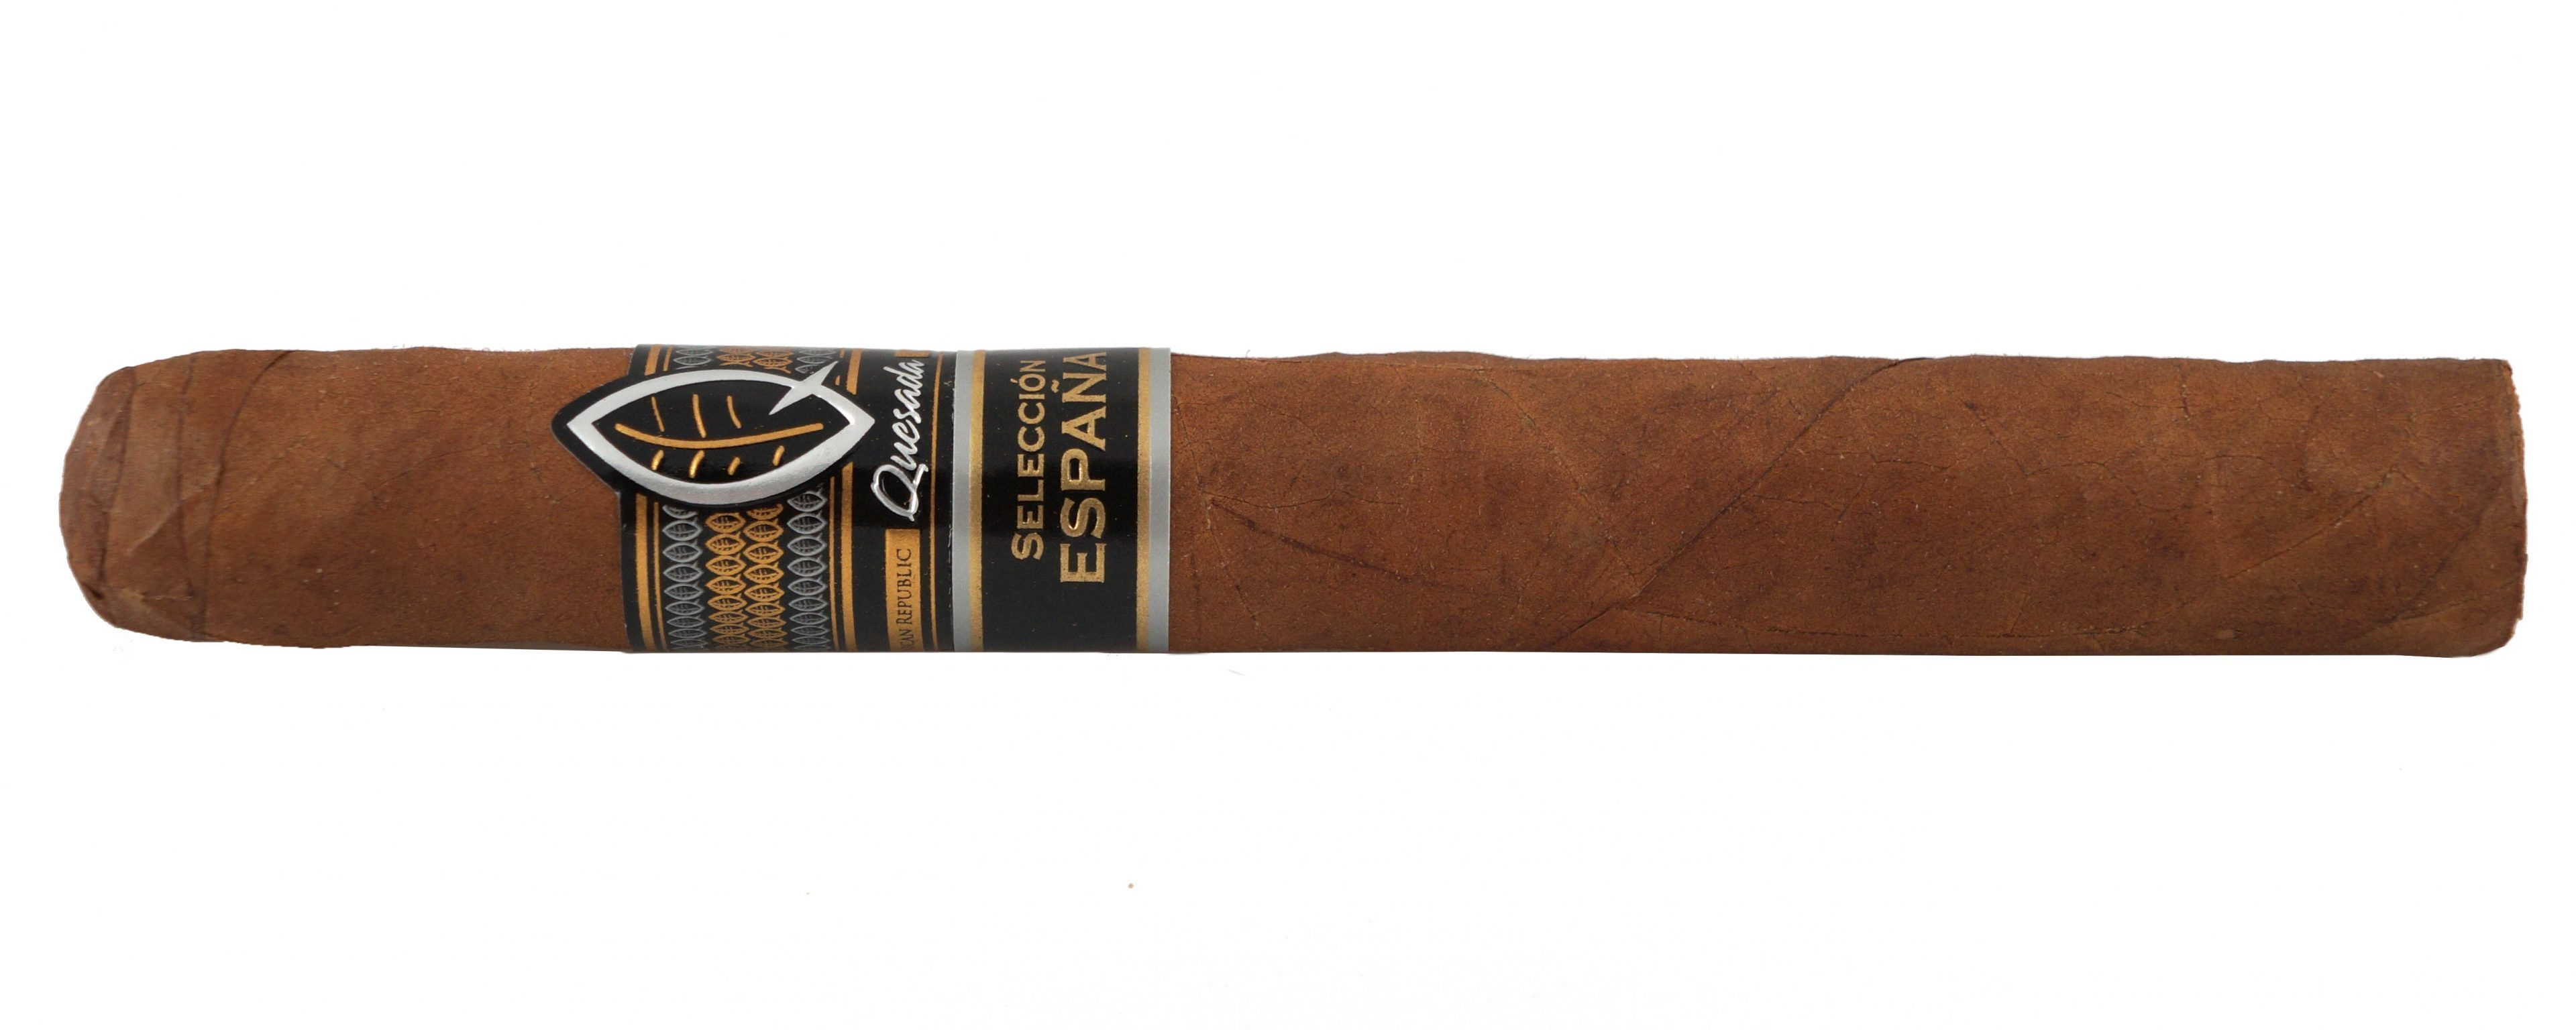 Blind Cigar Review: Quesada | Seleccion Espana Corona